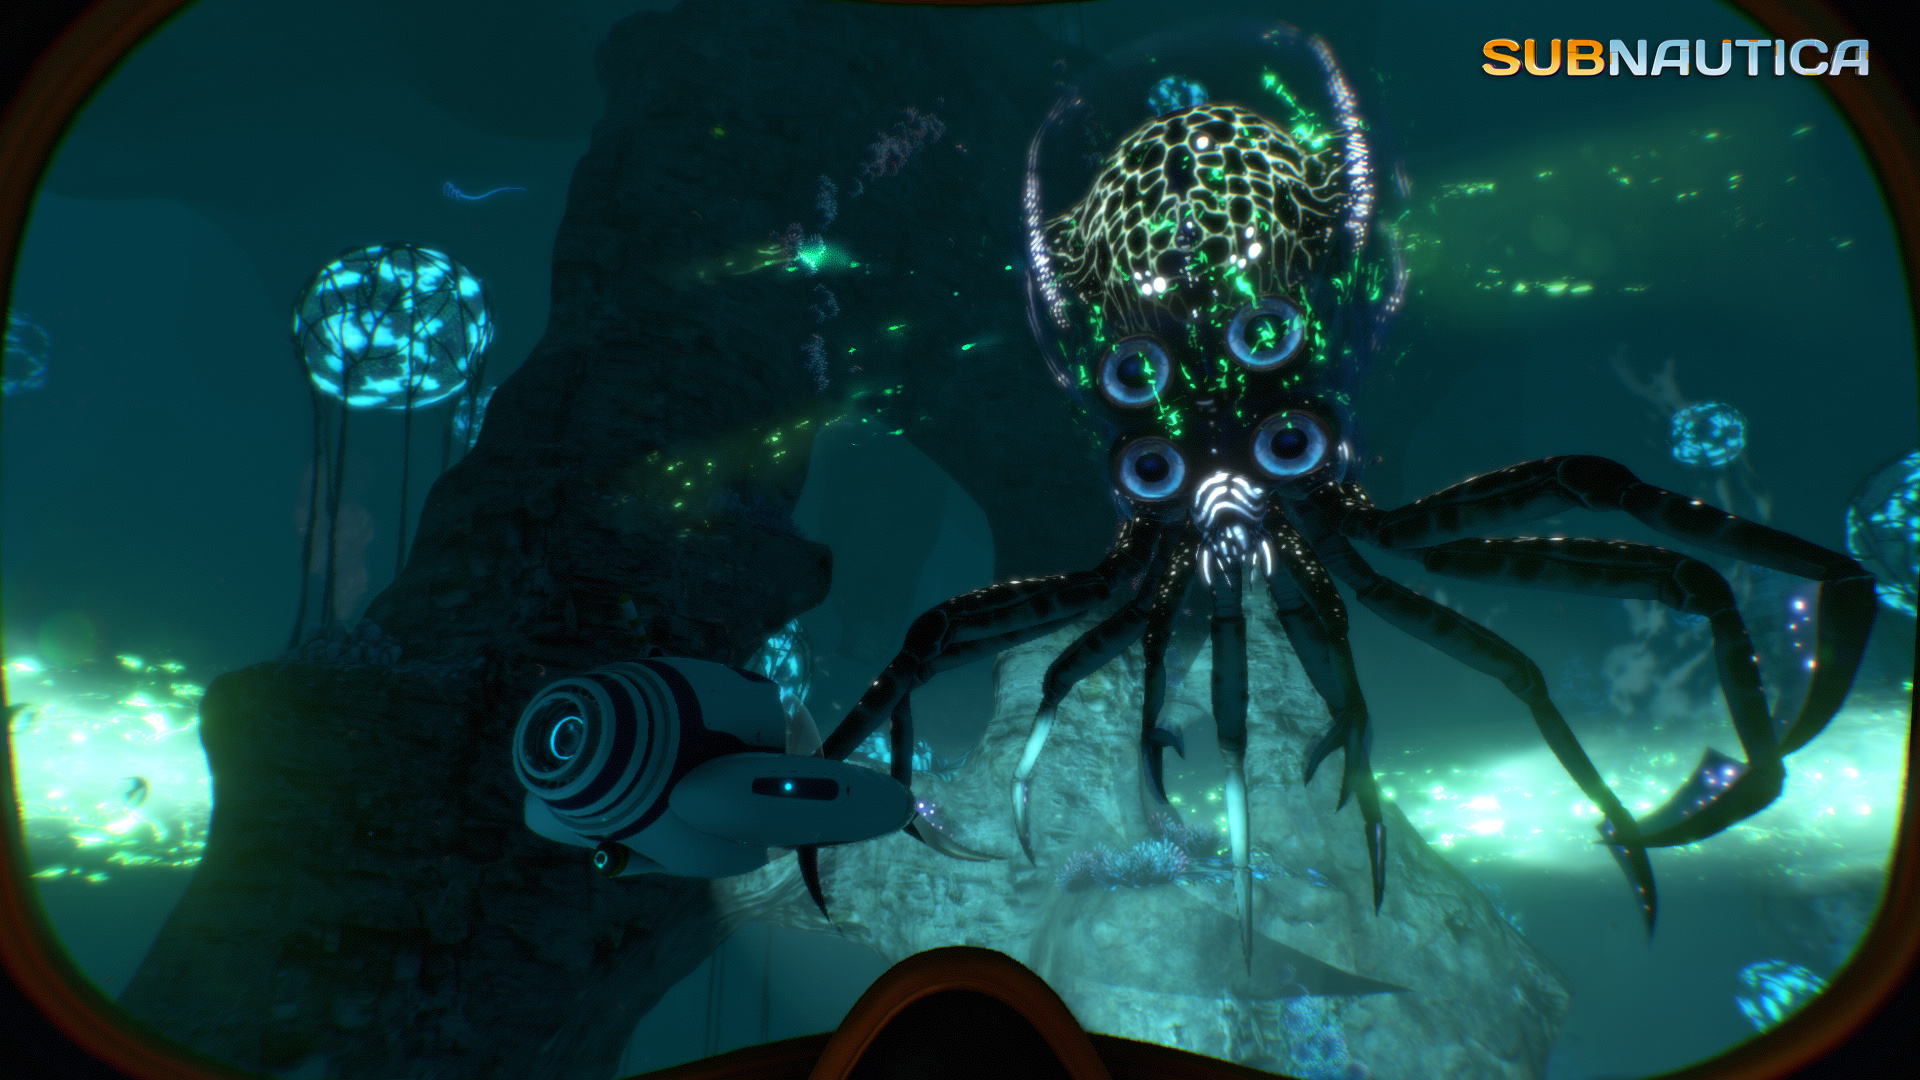 subnautica how to get started maps creatures game items and much